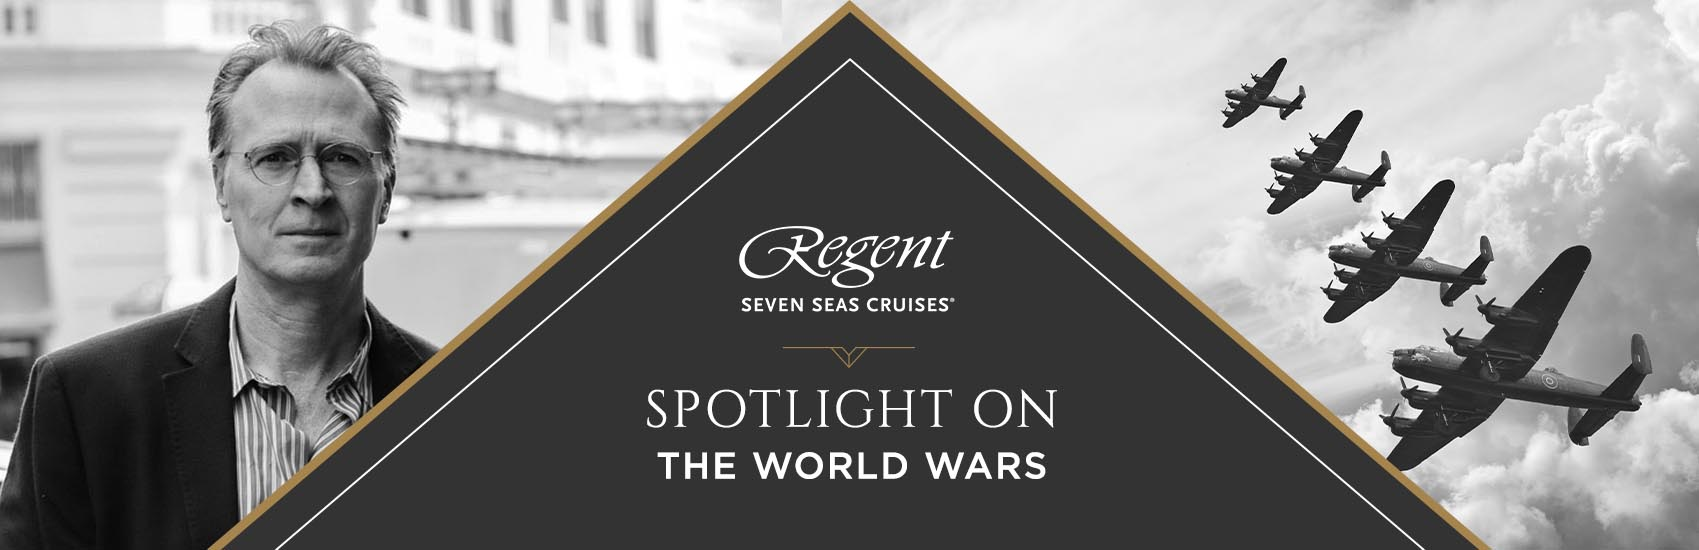 Spotlight Voyages with Regent Seven Seas 3